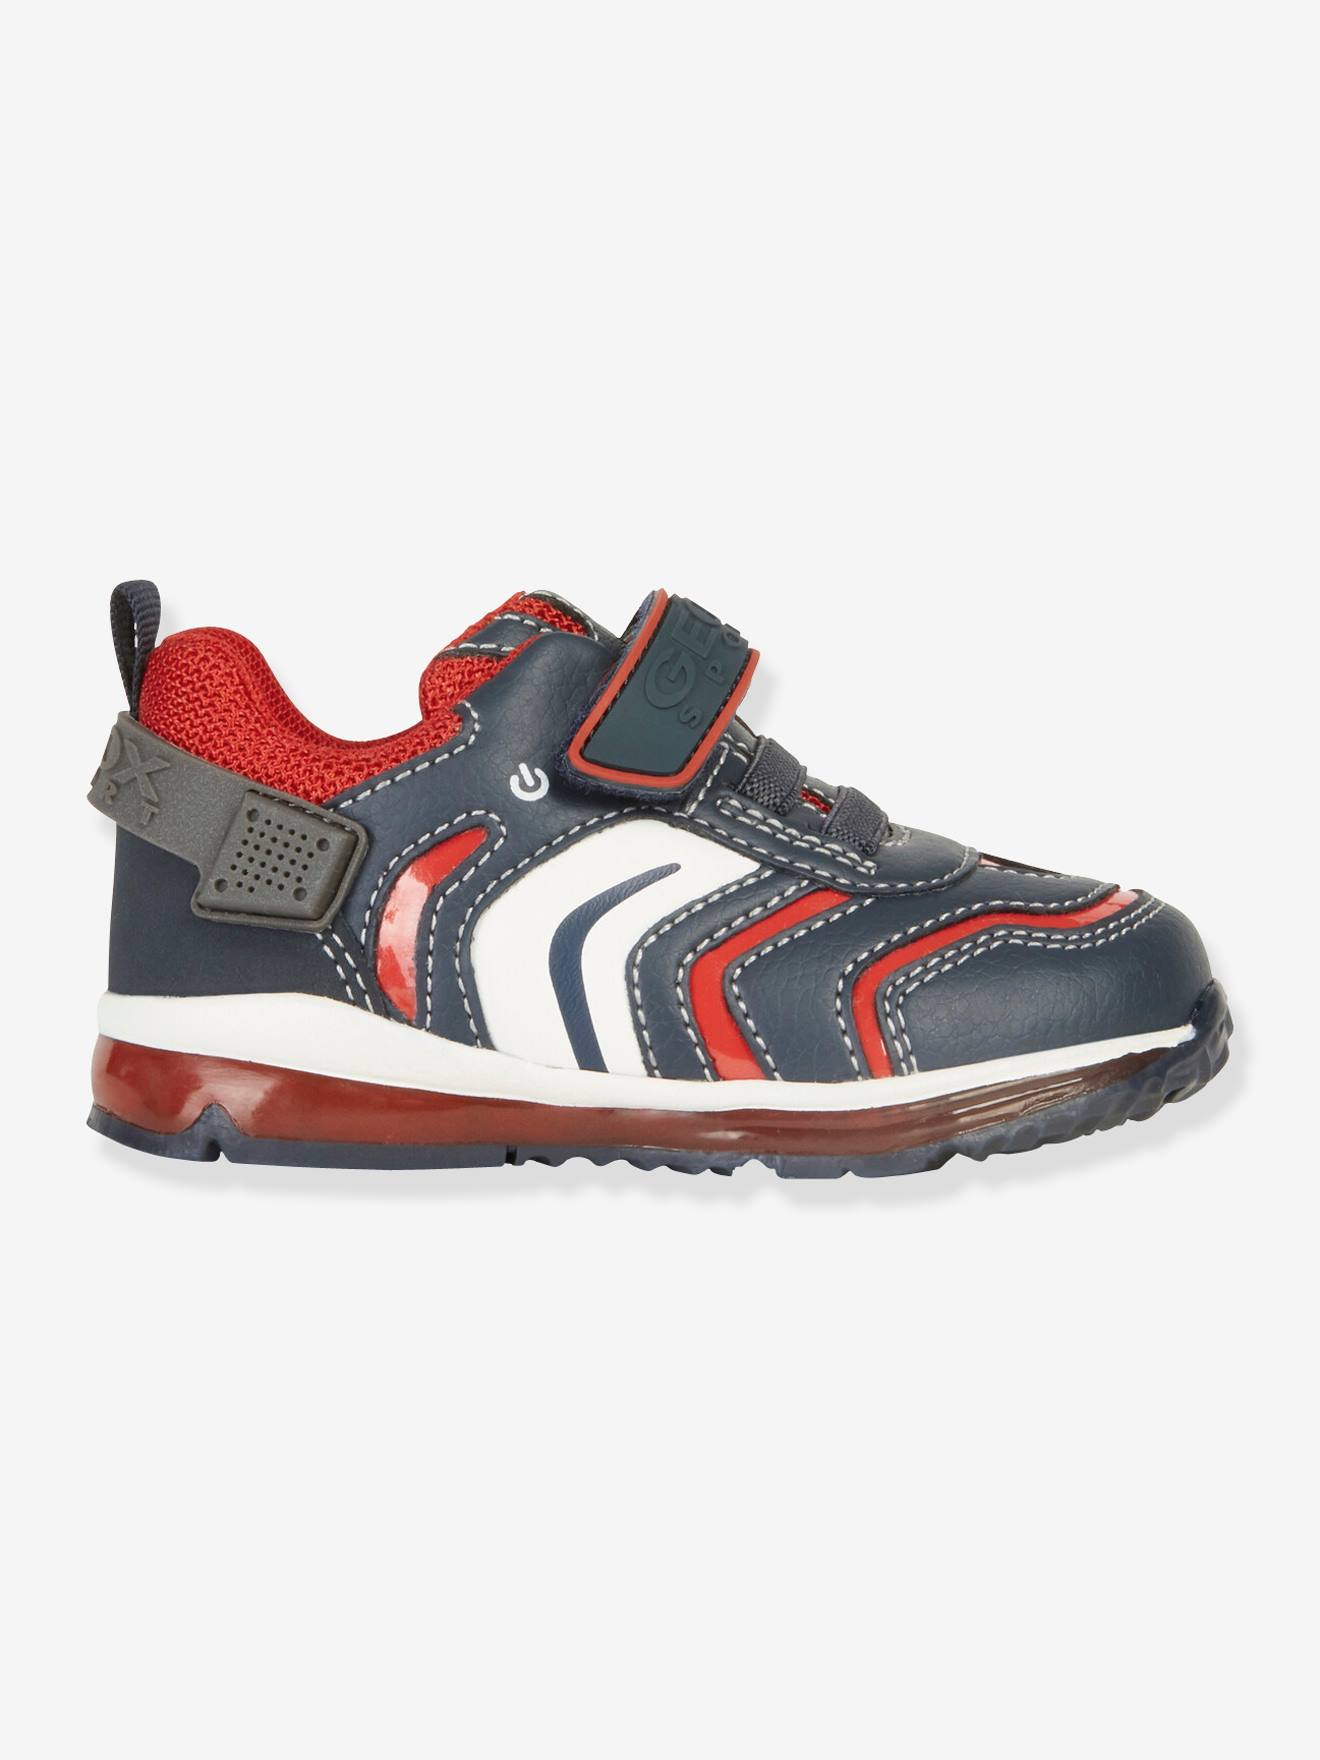 Geox Sports Shoes 7 to 8 Years Old Boy, Babies & Kids on